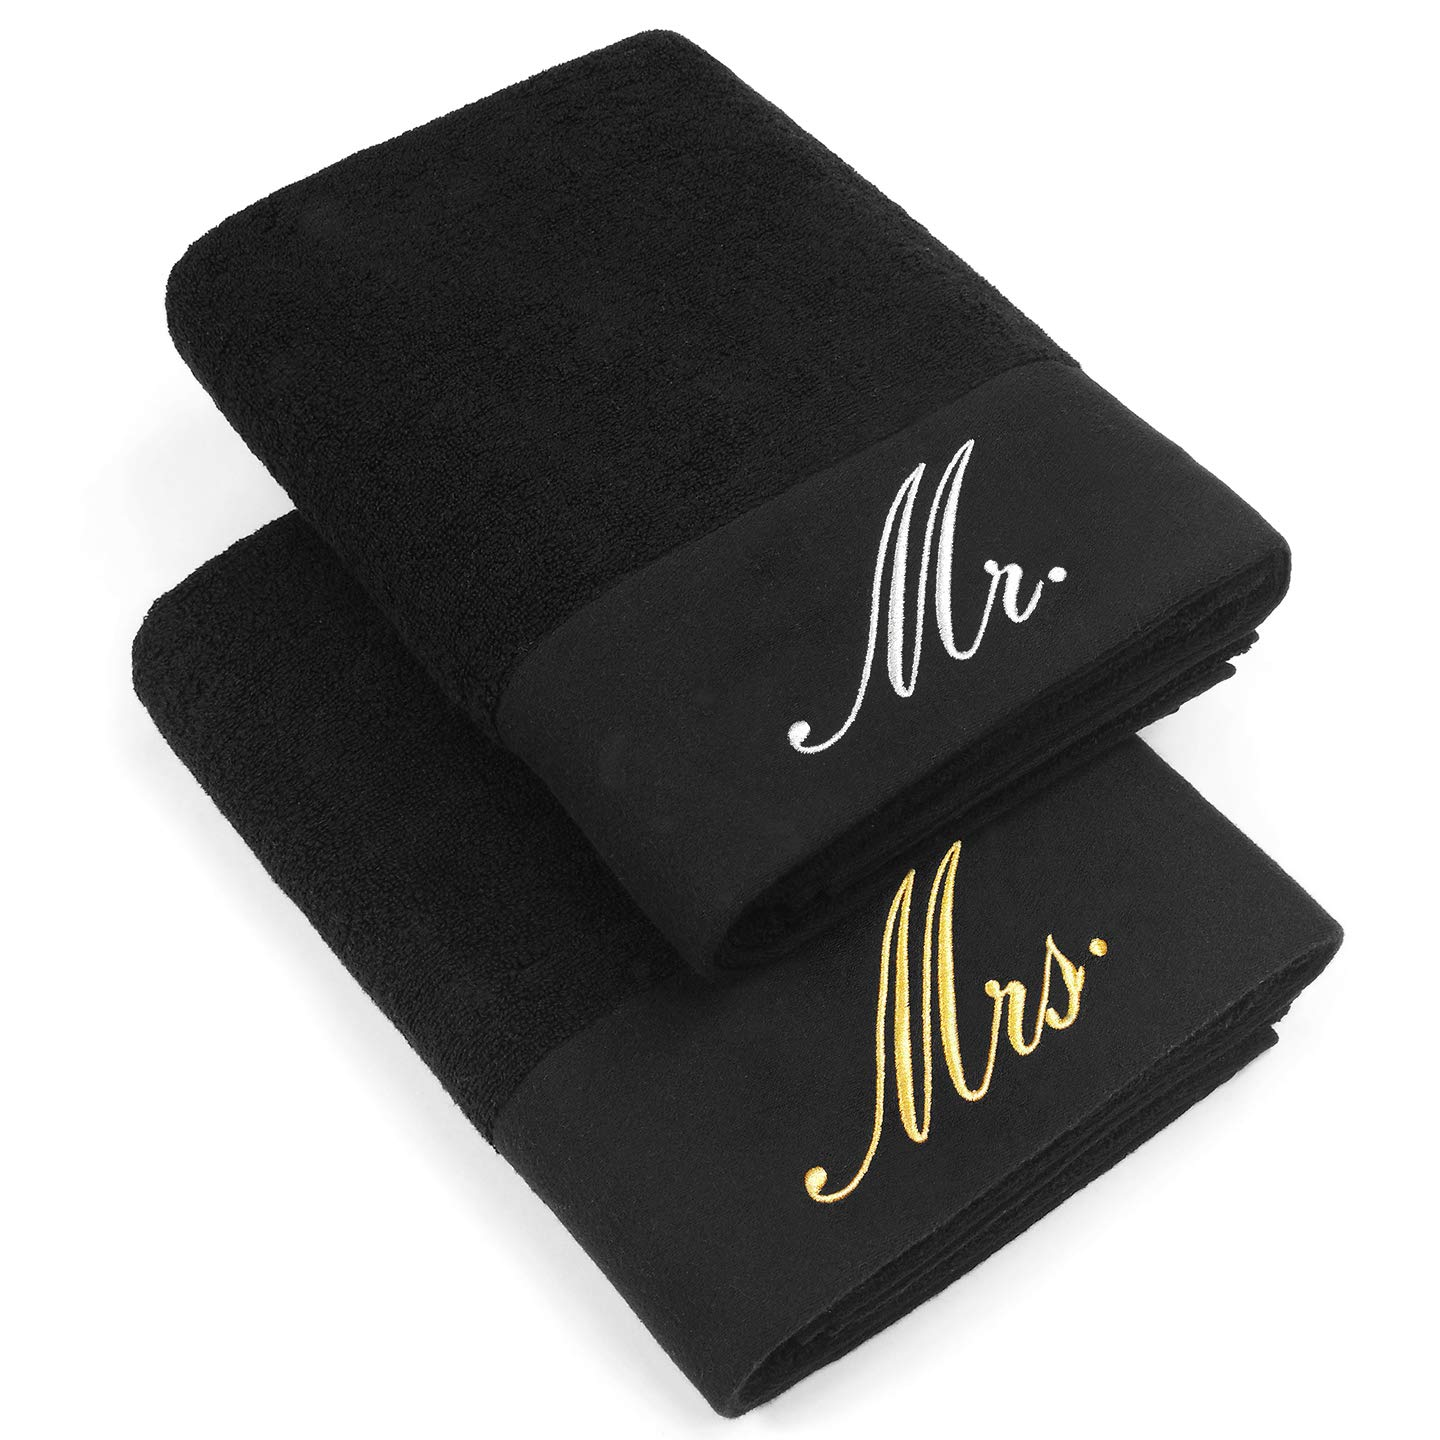 Ben Kaufman Sales KAUFMAN - LUXURIOUS COUPLES EMBROIDERED BATH SHEET SET OF 2 LARGE TOWELS FOR PARTNERS (Black - Mr and Mrs)